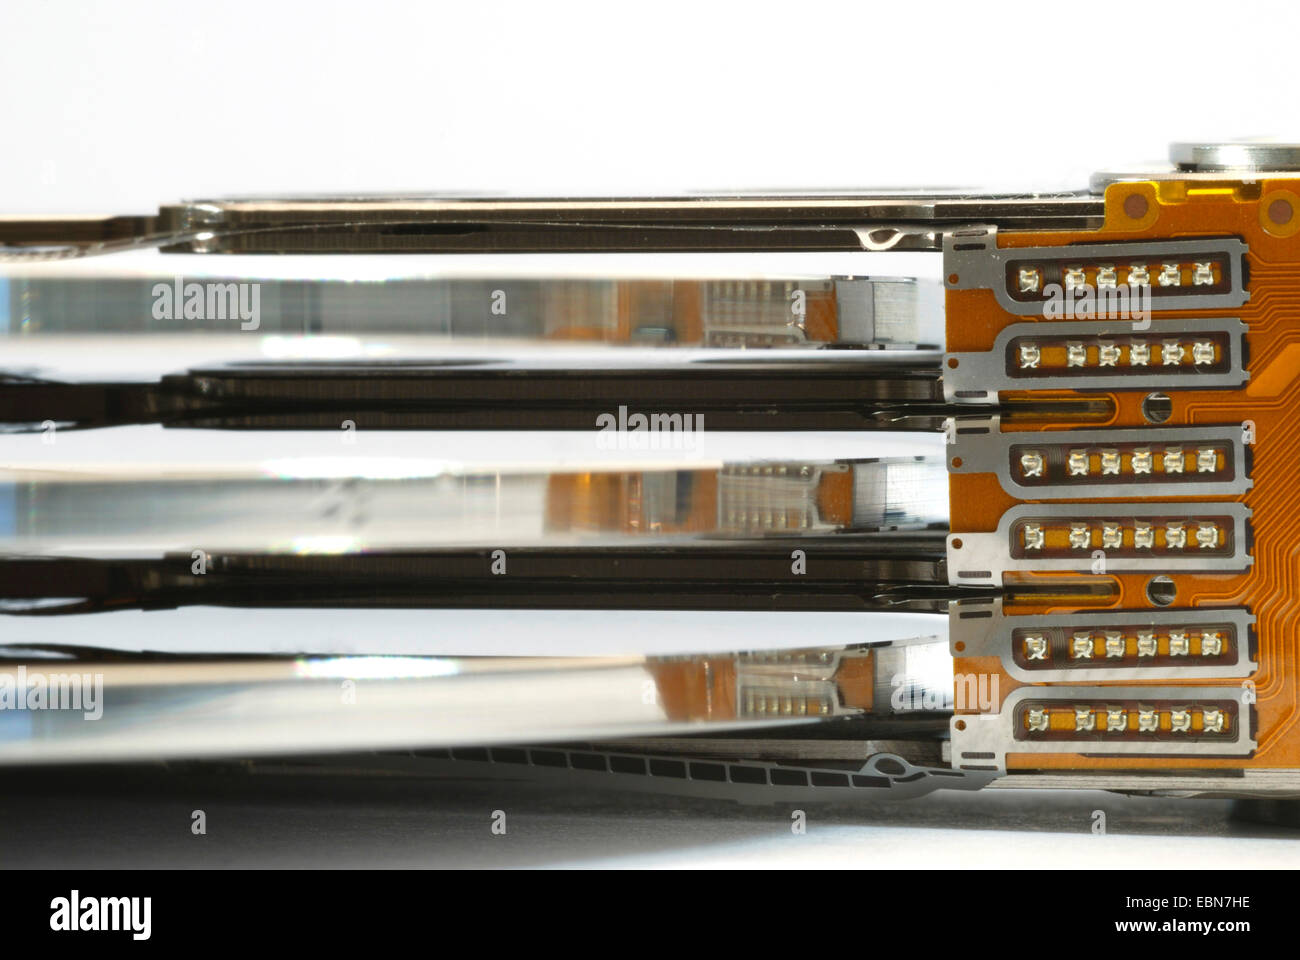 platters of hard disk drive - Stock Image